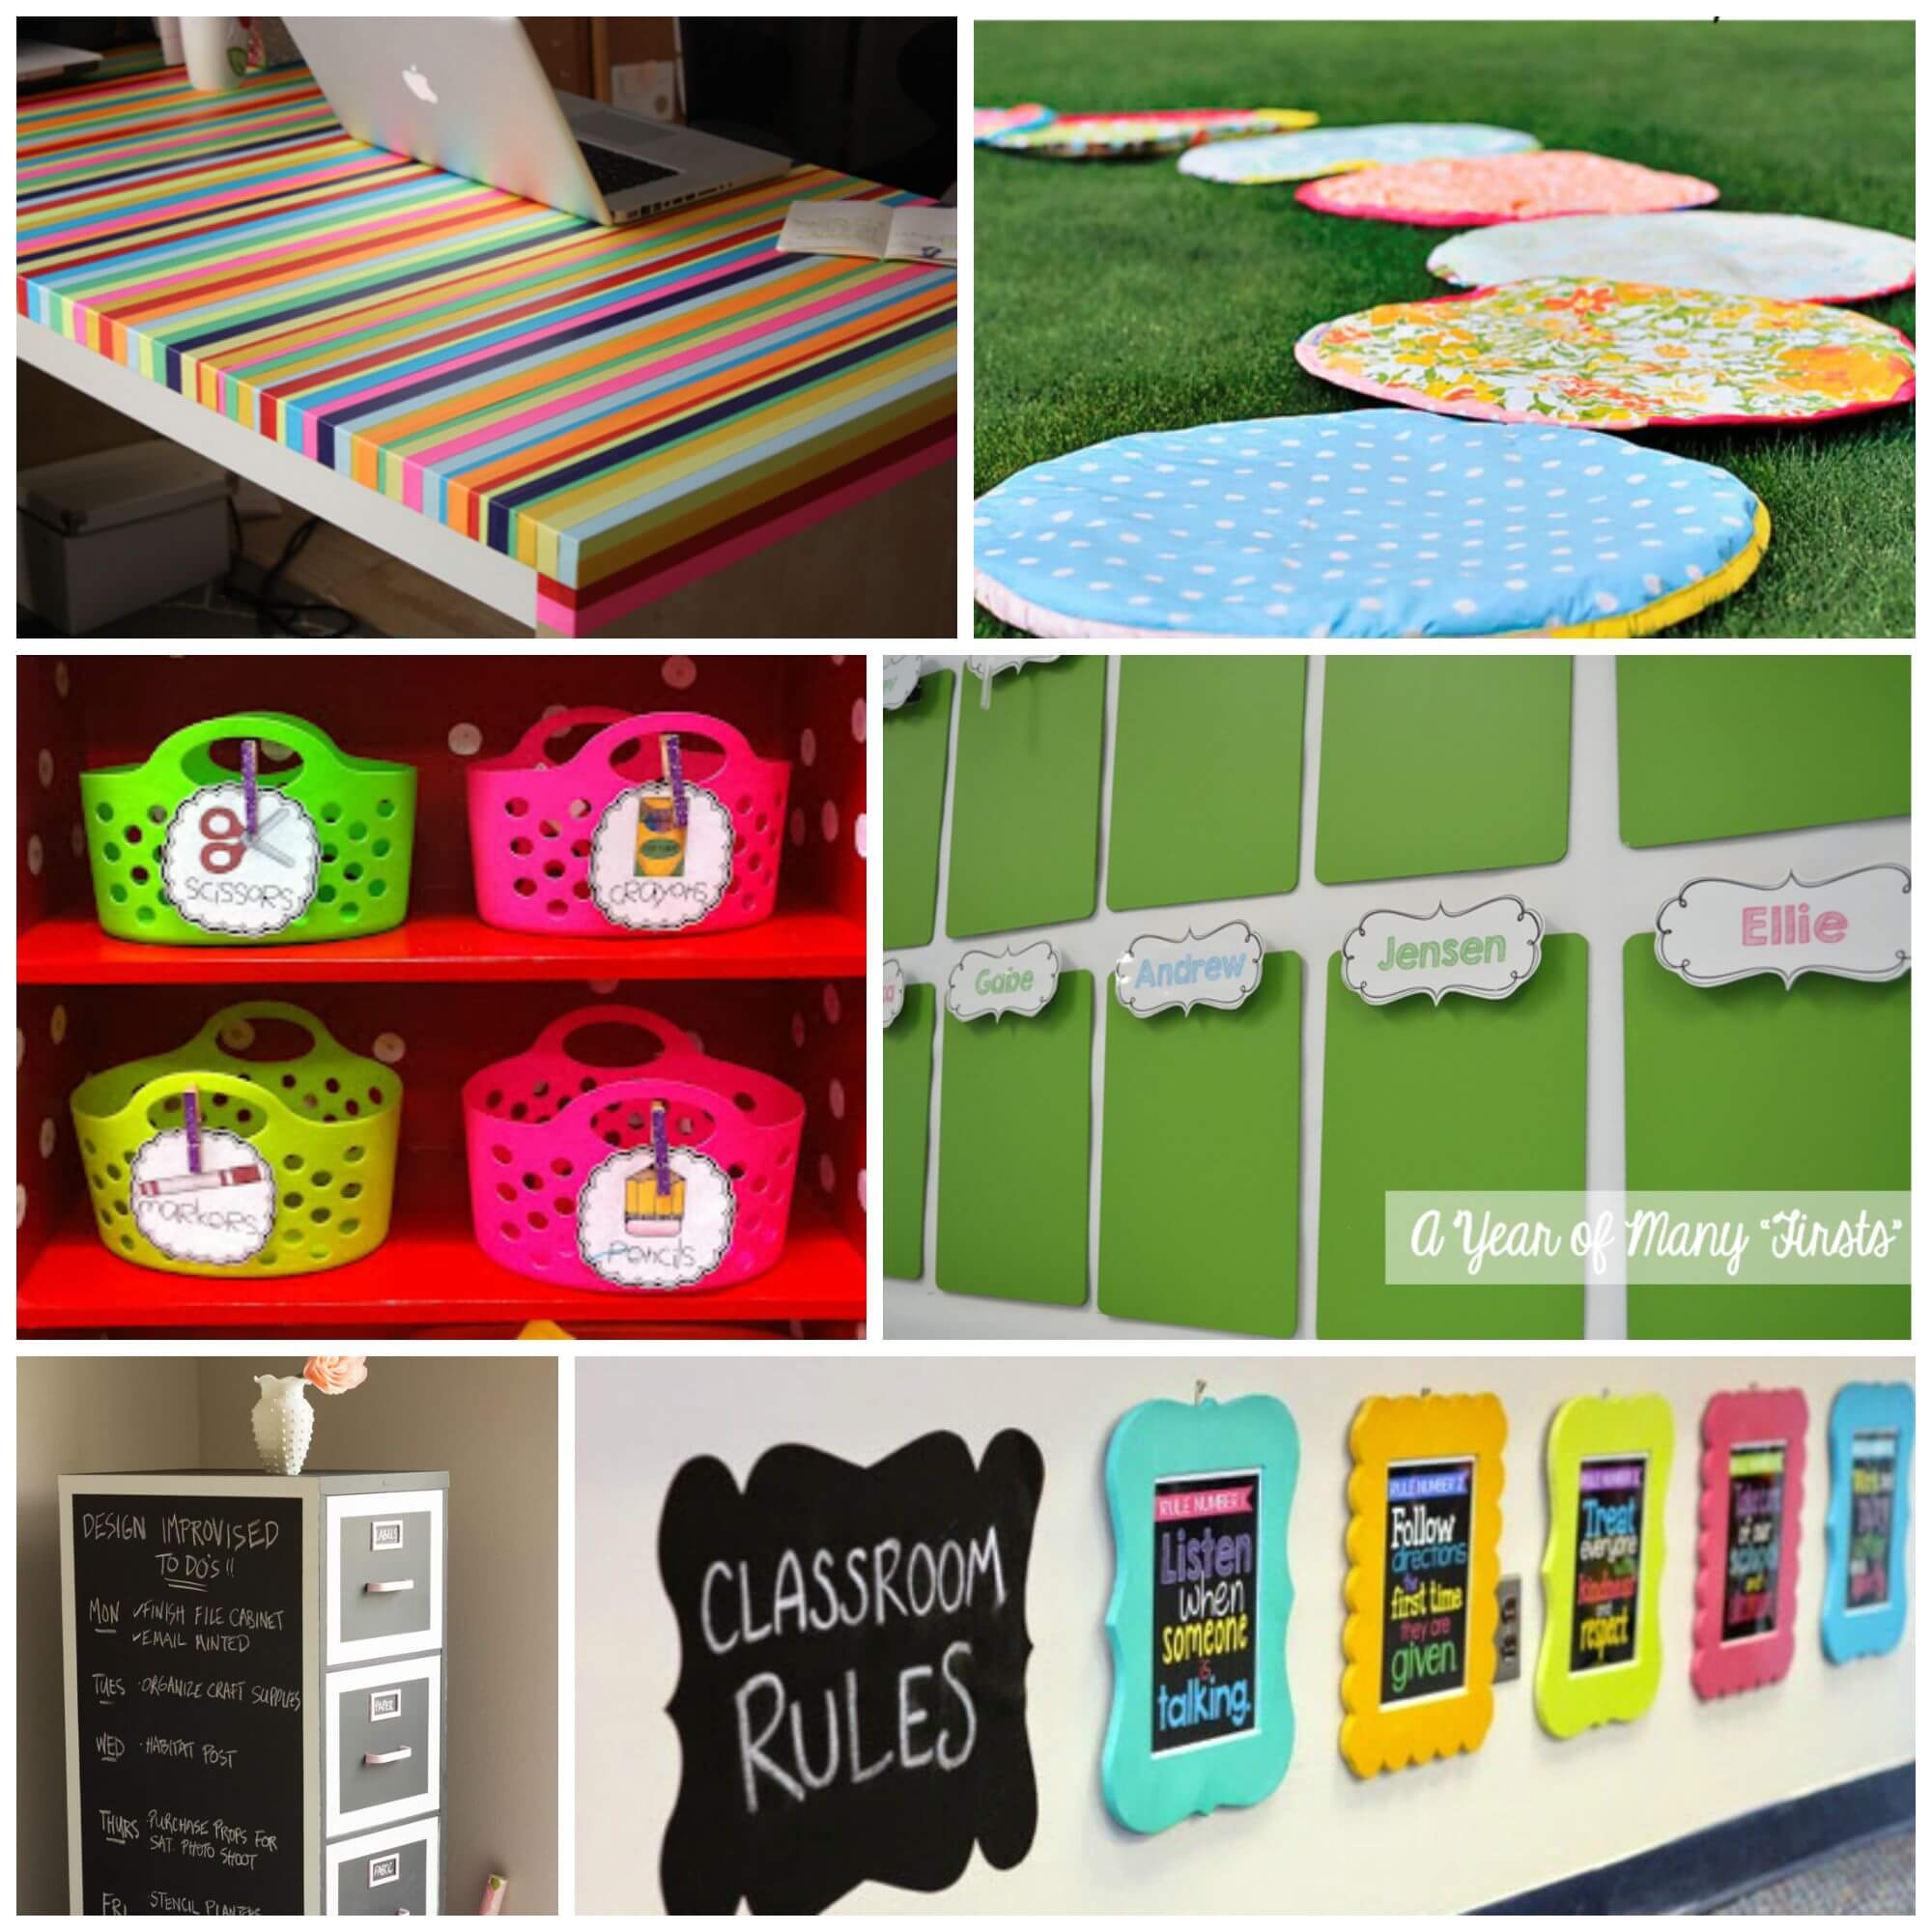 Tons of classroom decoration ideas  sc 1 st  Playdough To Plato & 20 Inspiring Classroom Decoration Ideas - Playdough To Plato